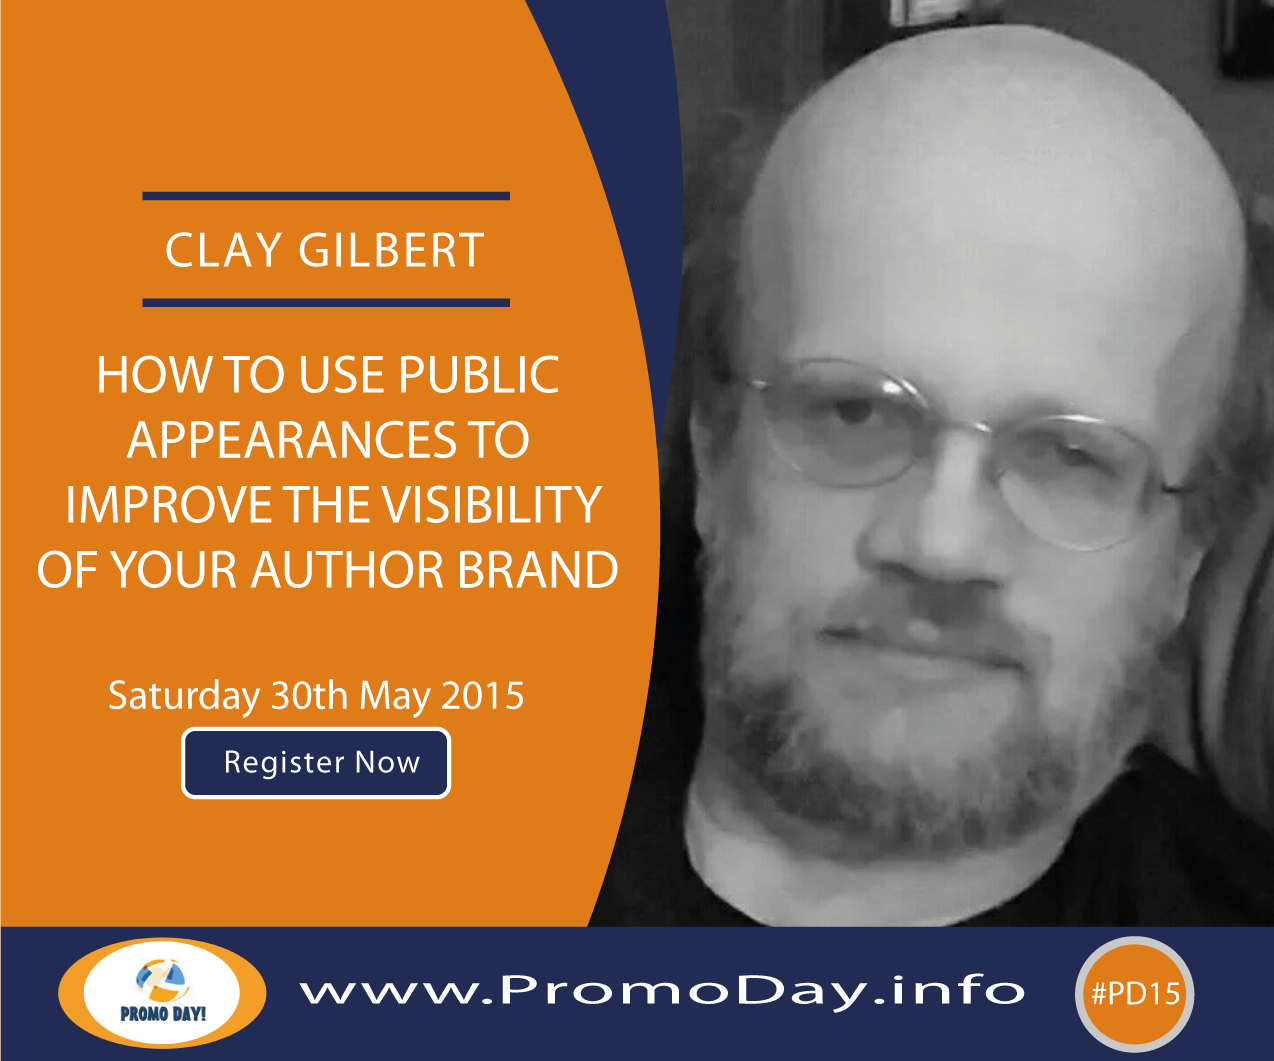 #PD15 Webinar: How To Use Public Appearances To Improve The Visibility of Your Author Brand with Clay Gilbert